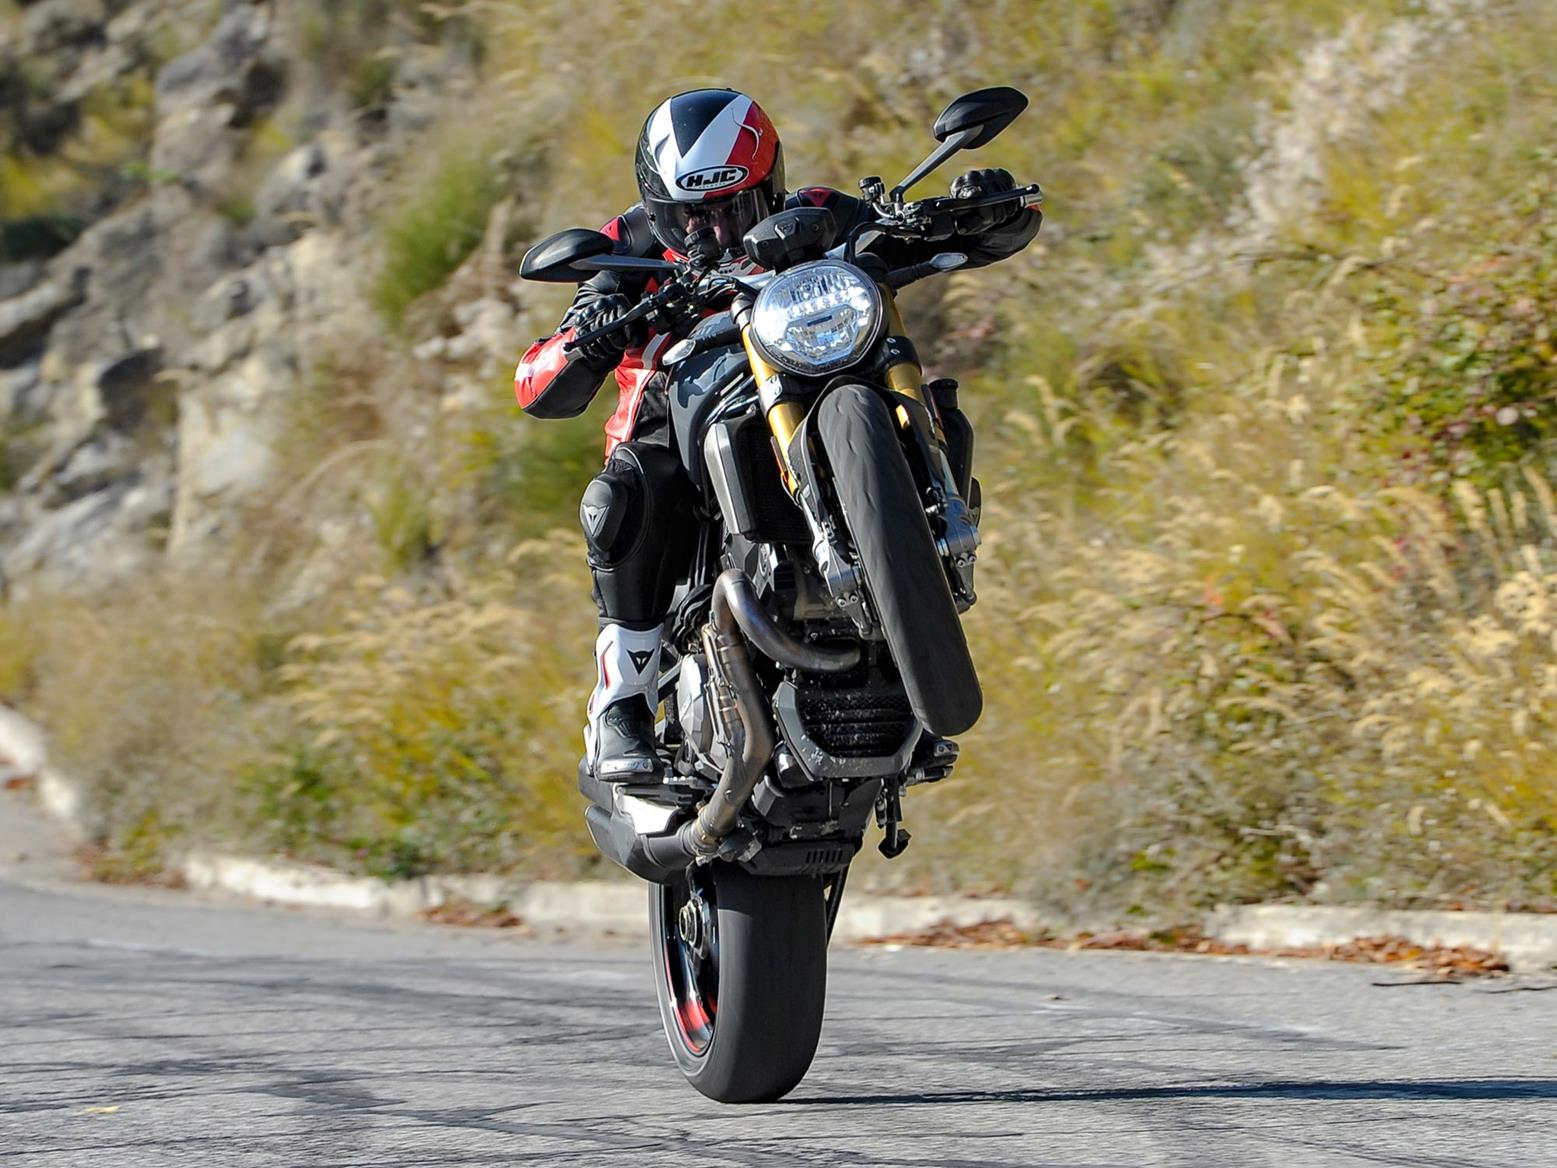 Ducati Monster 1200 wheelie